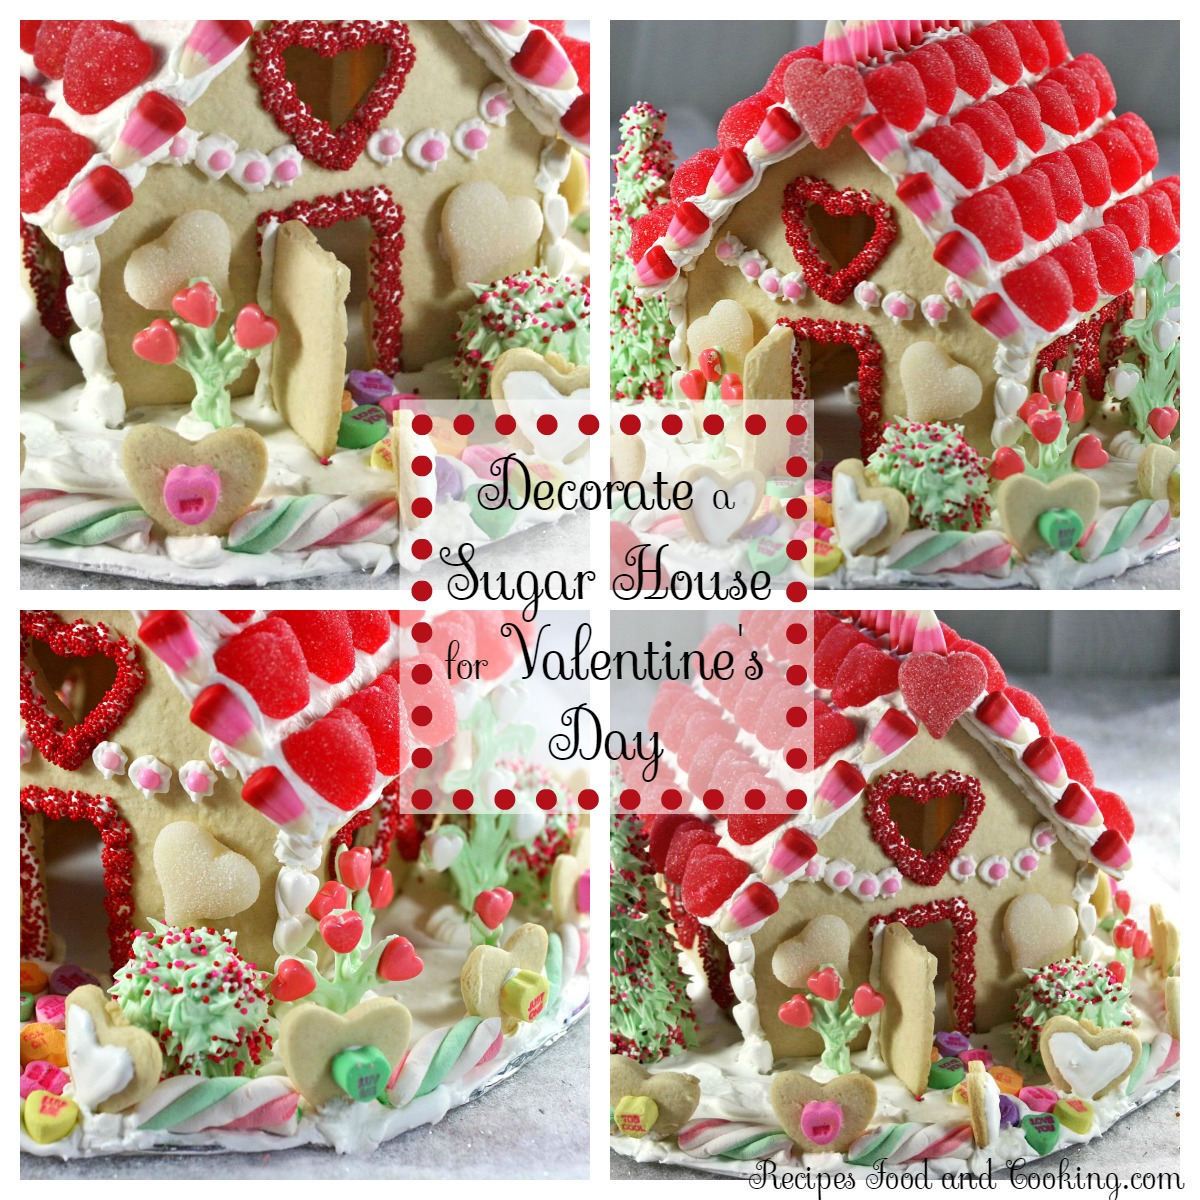 Make a Sugar House for Valentine's Day